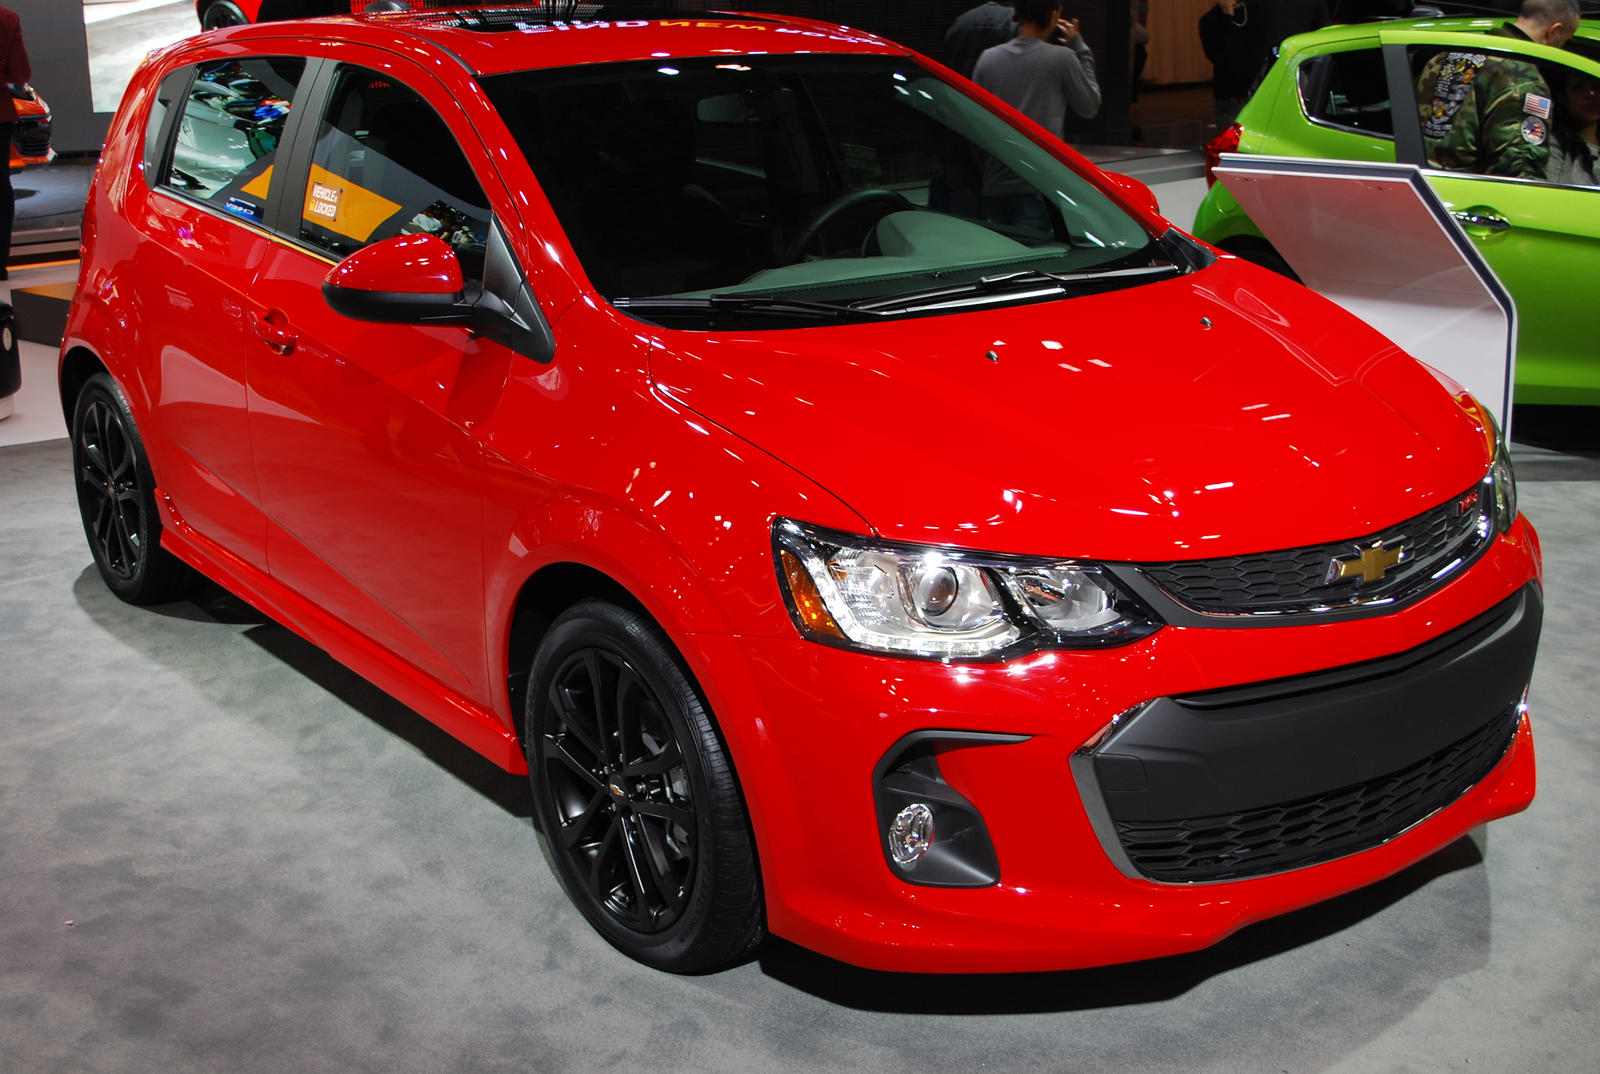 2017 CHEVROLET Sonic Hatchback RS (III) by HardRocker78 on DeviantArt